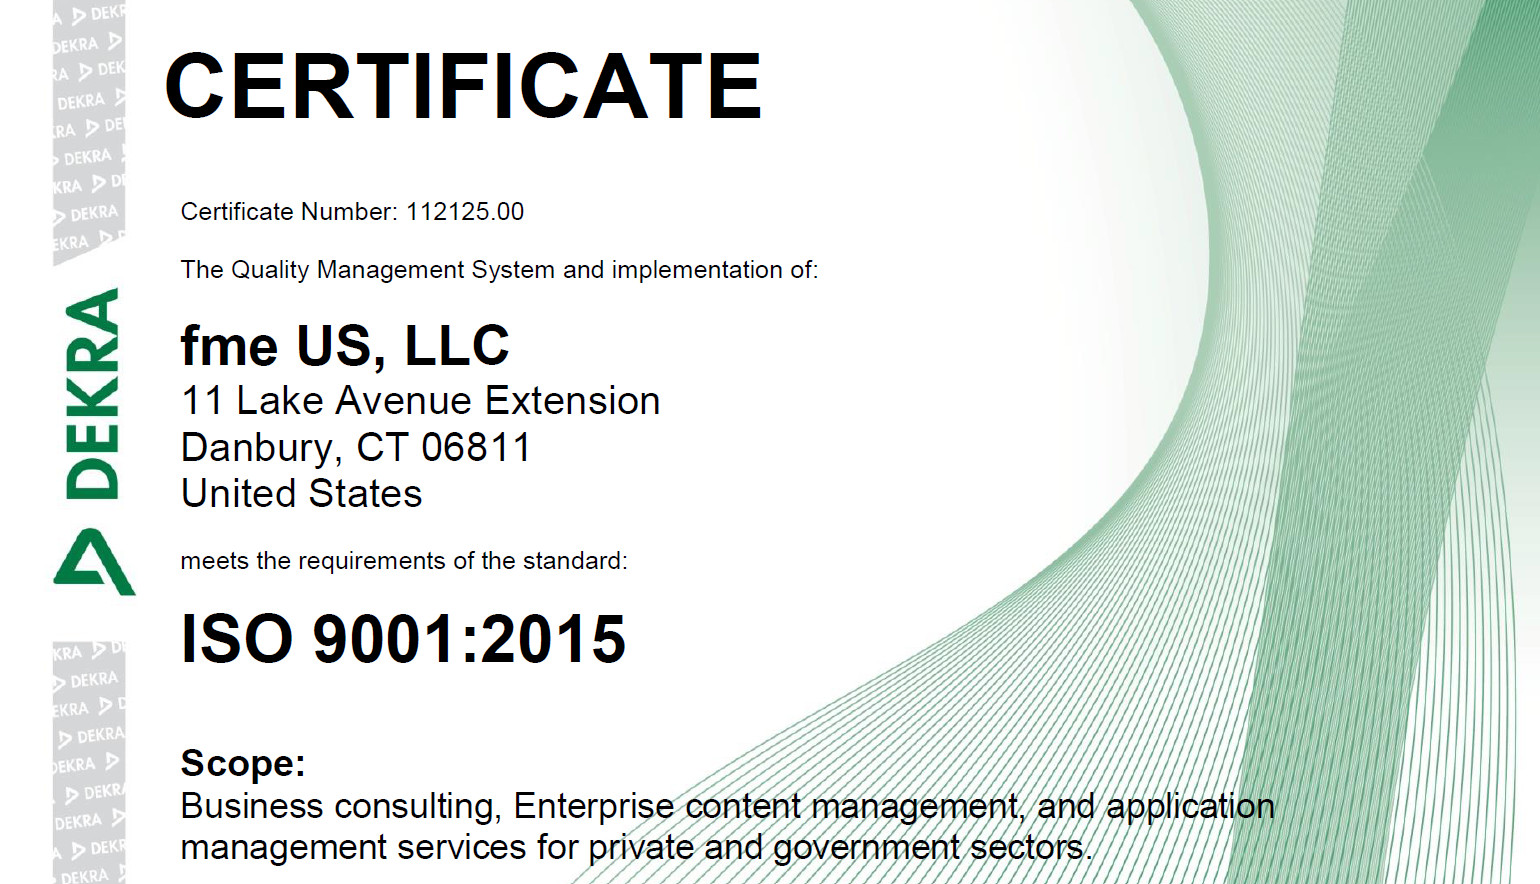 Certificate for ISO 9001 fme US